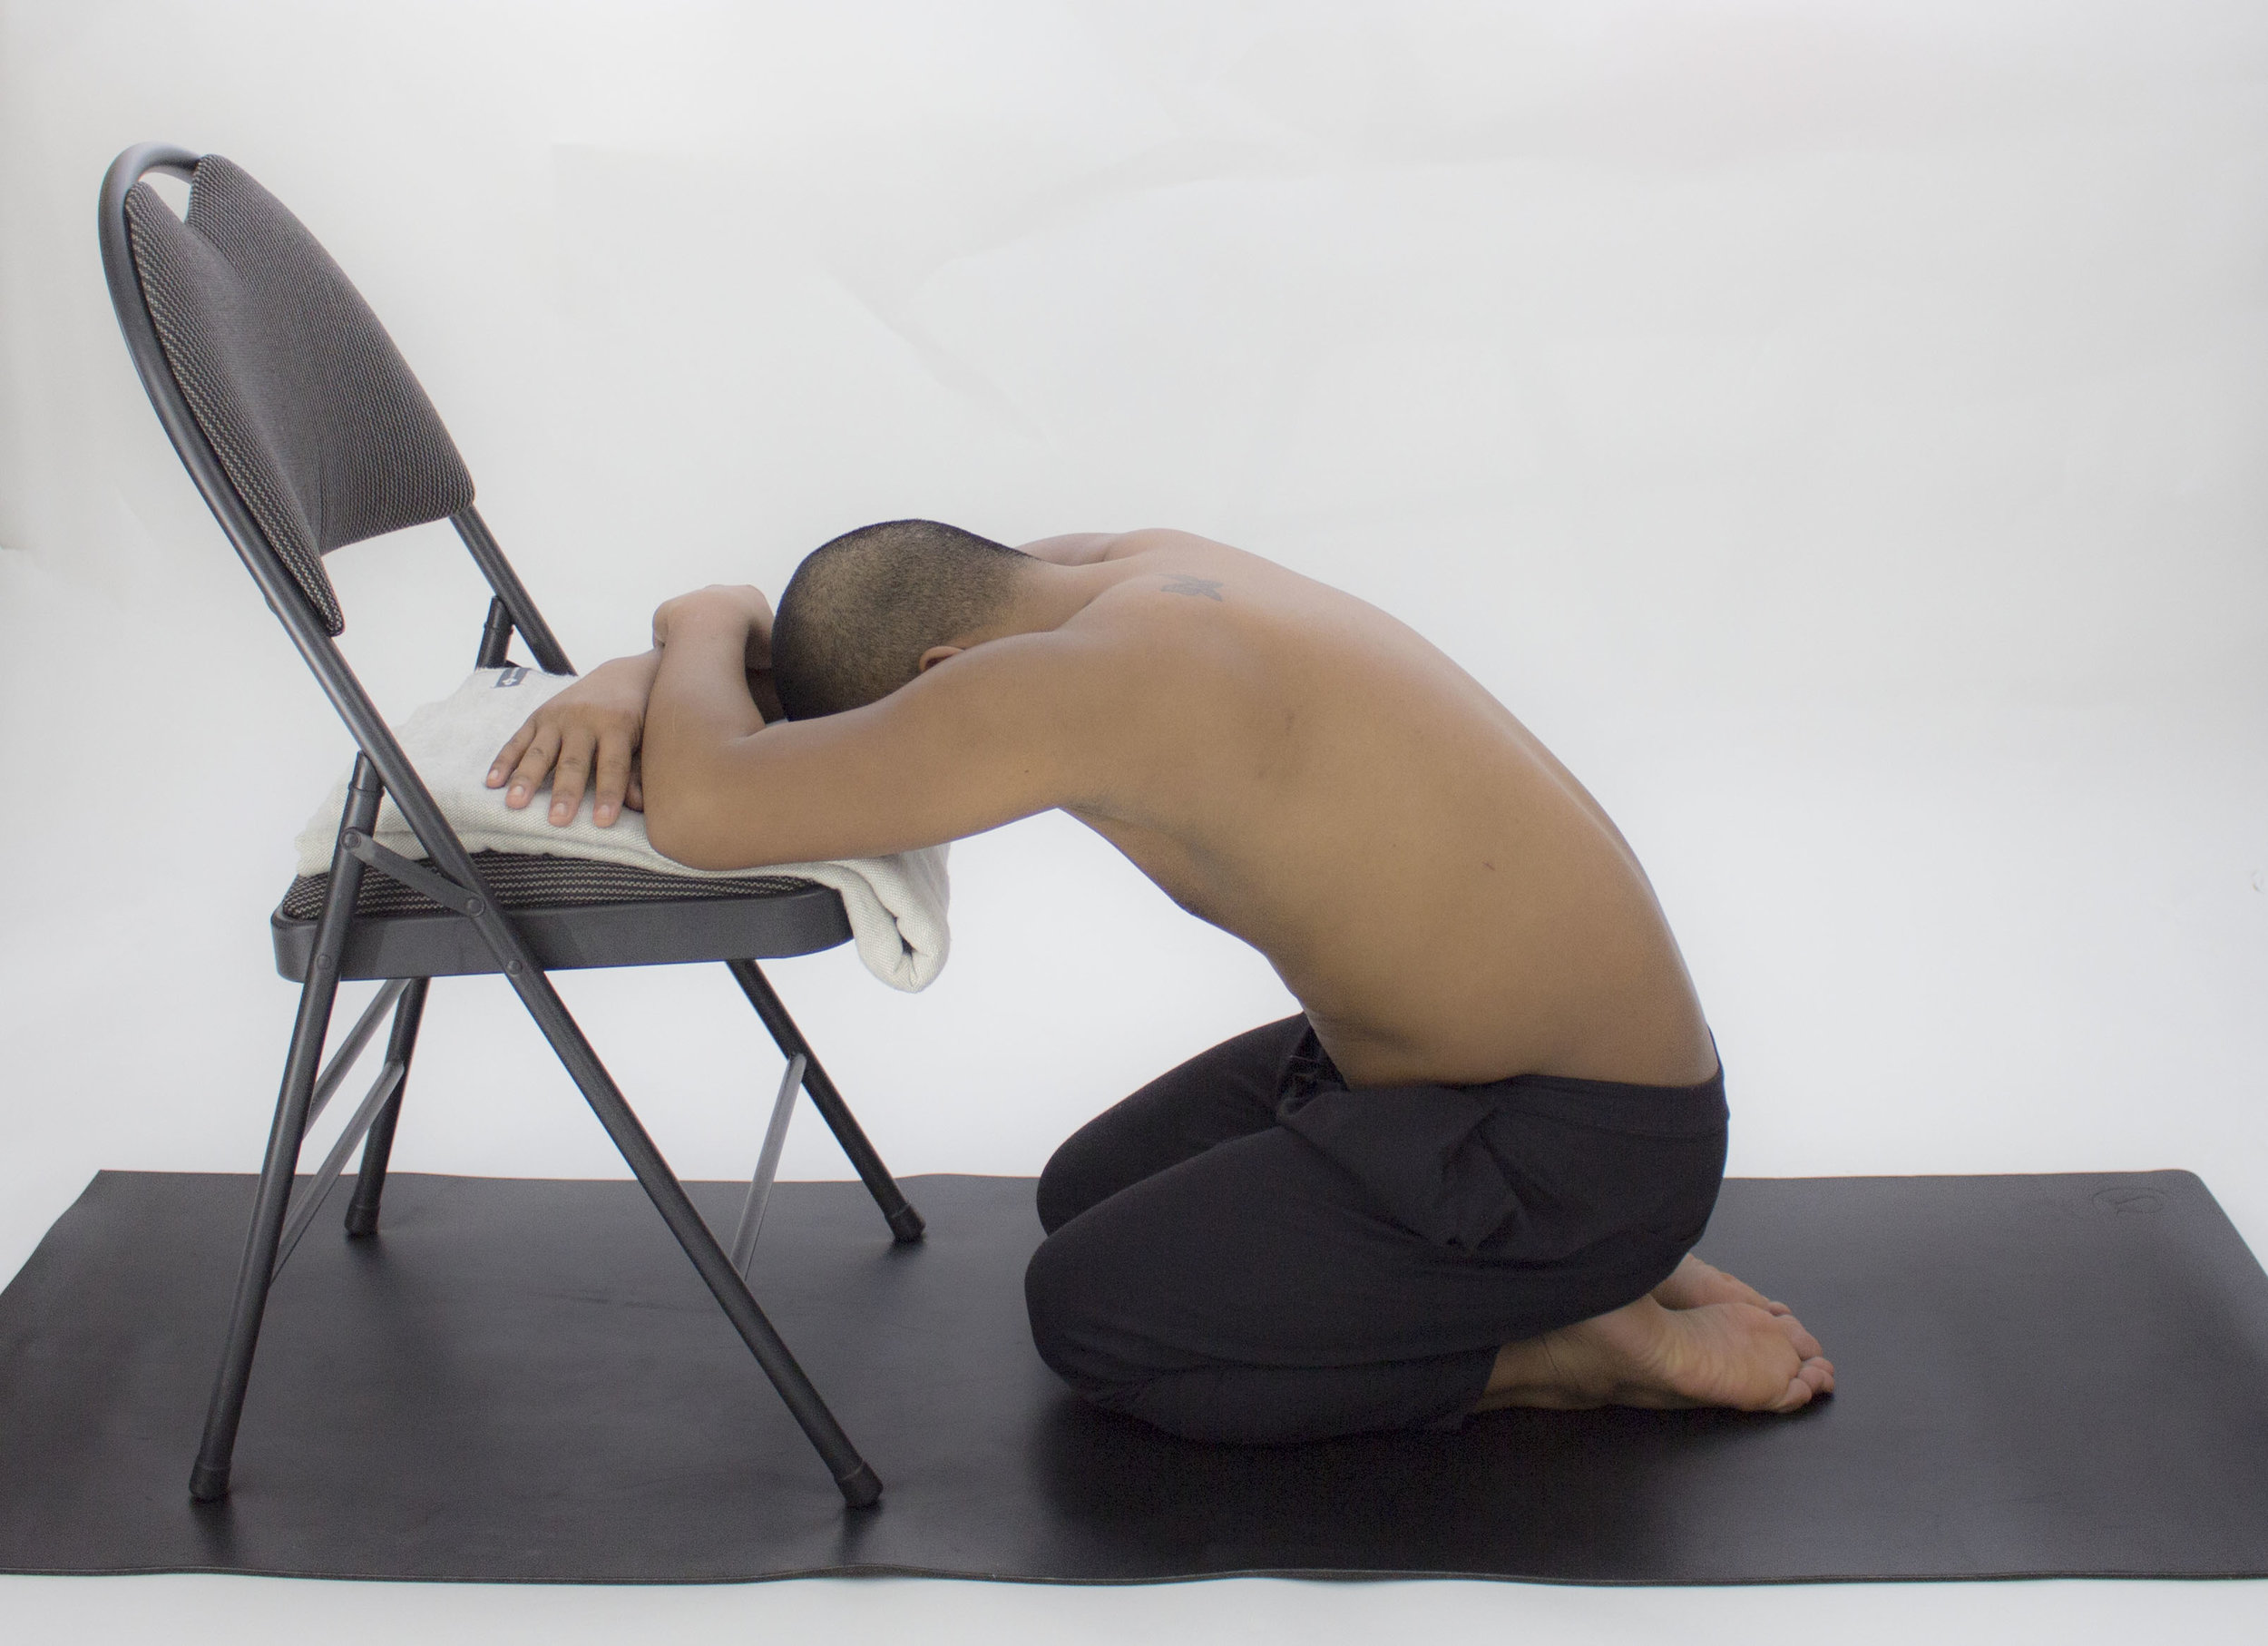 One on one training helps with your unique requirements. Tailoring your work out plan or yoga classes to suit needs and requests. image: assisted yoga pose, props are helpful tools in posture modification. Props are provided during sessions.